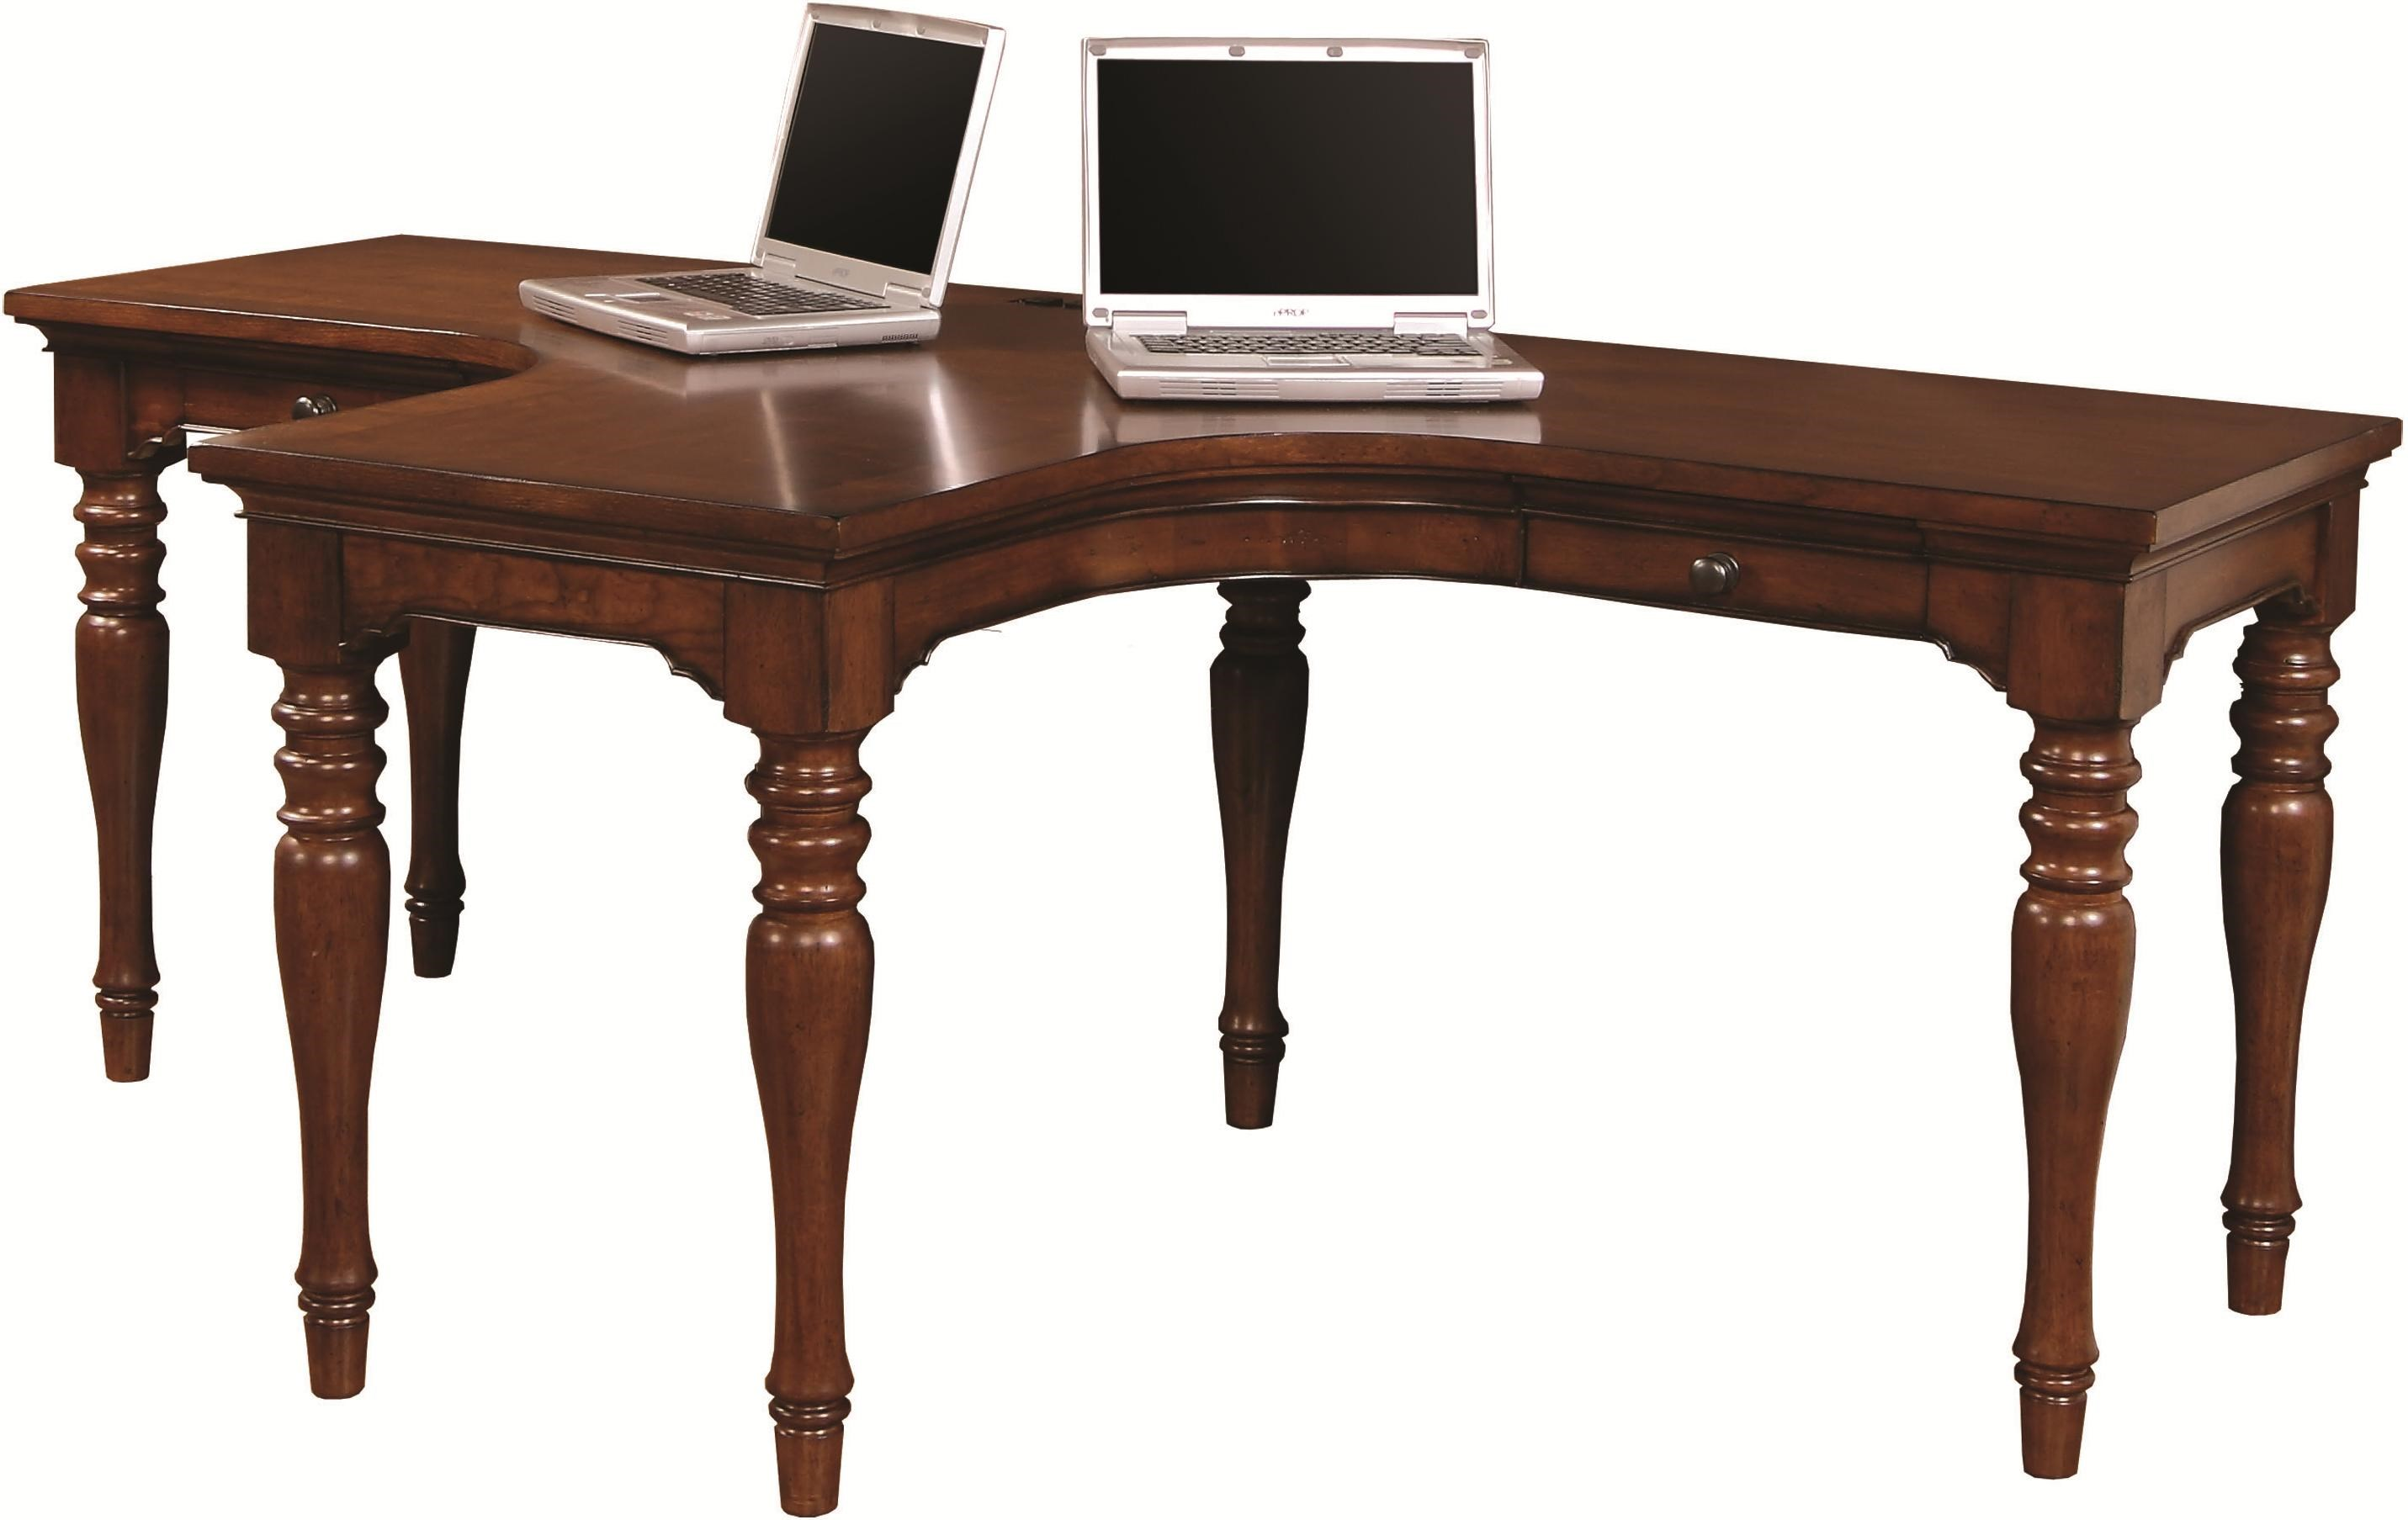 dual furniture. aspenhome villager dual t desk with 2 drawers and 4 ac outlets belfort furniture lshape